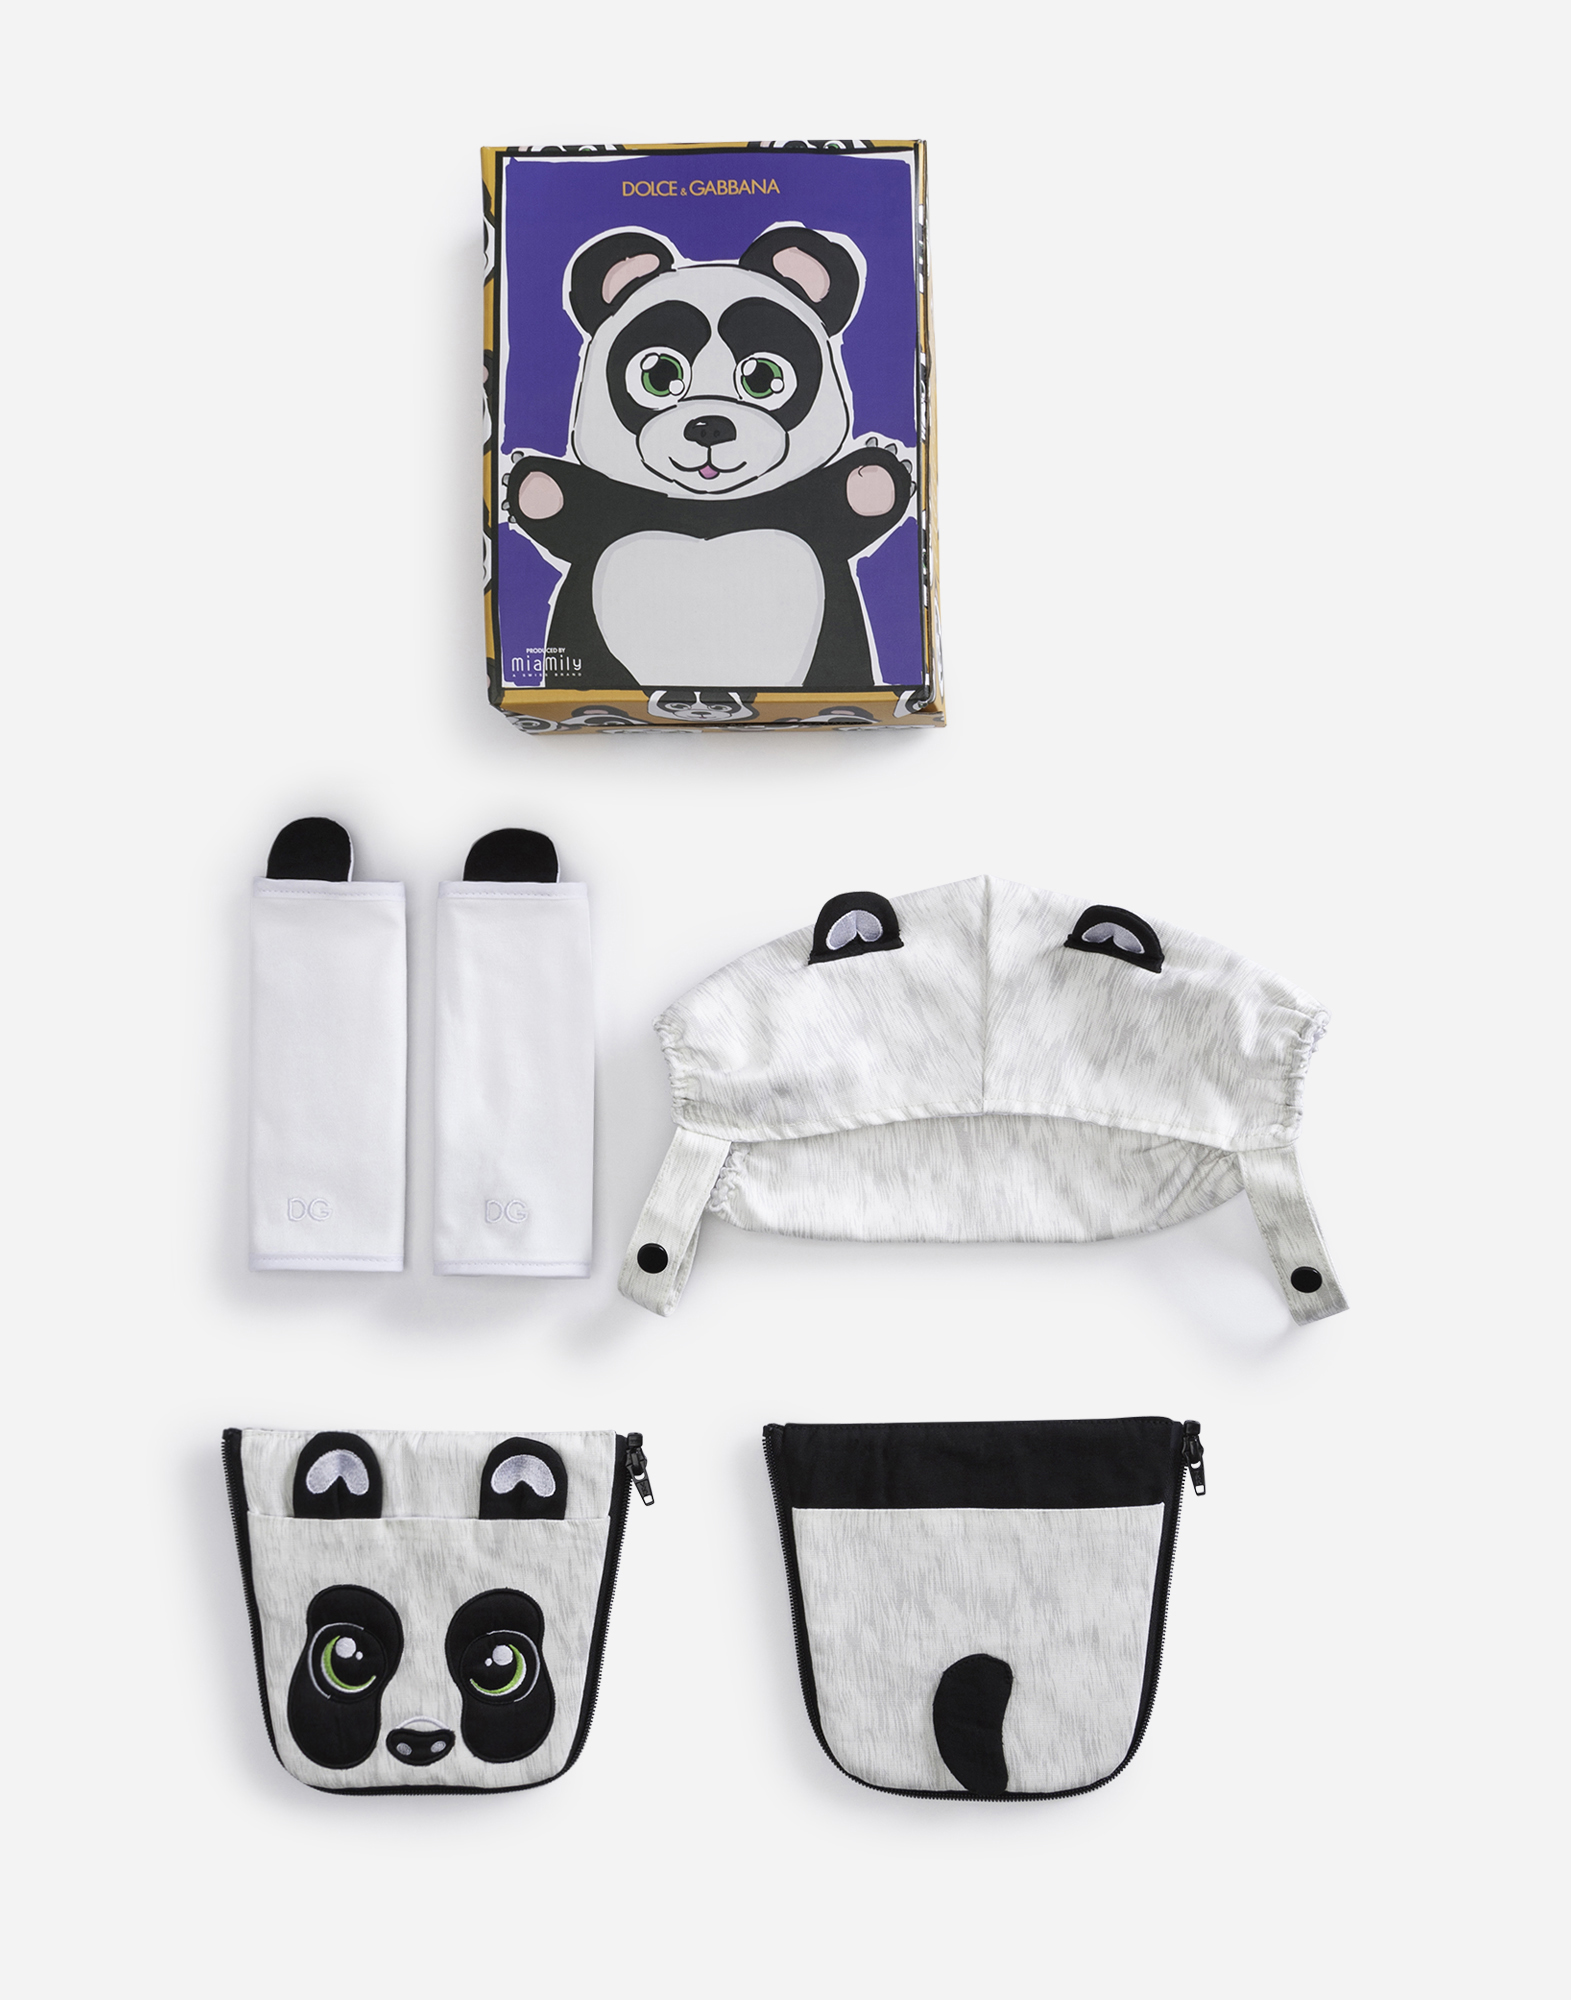 Dolce&Gabbana PANDA COVER FOR BABY CARRIER